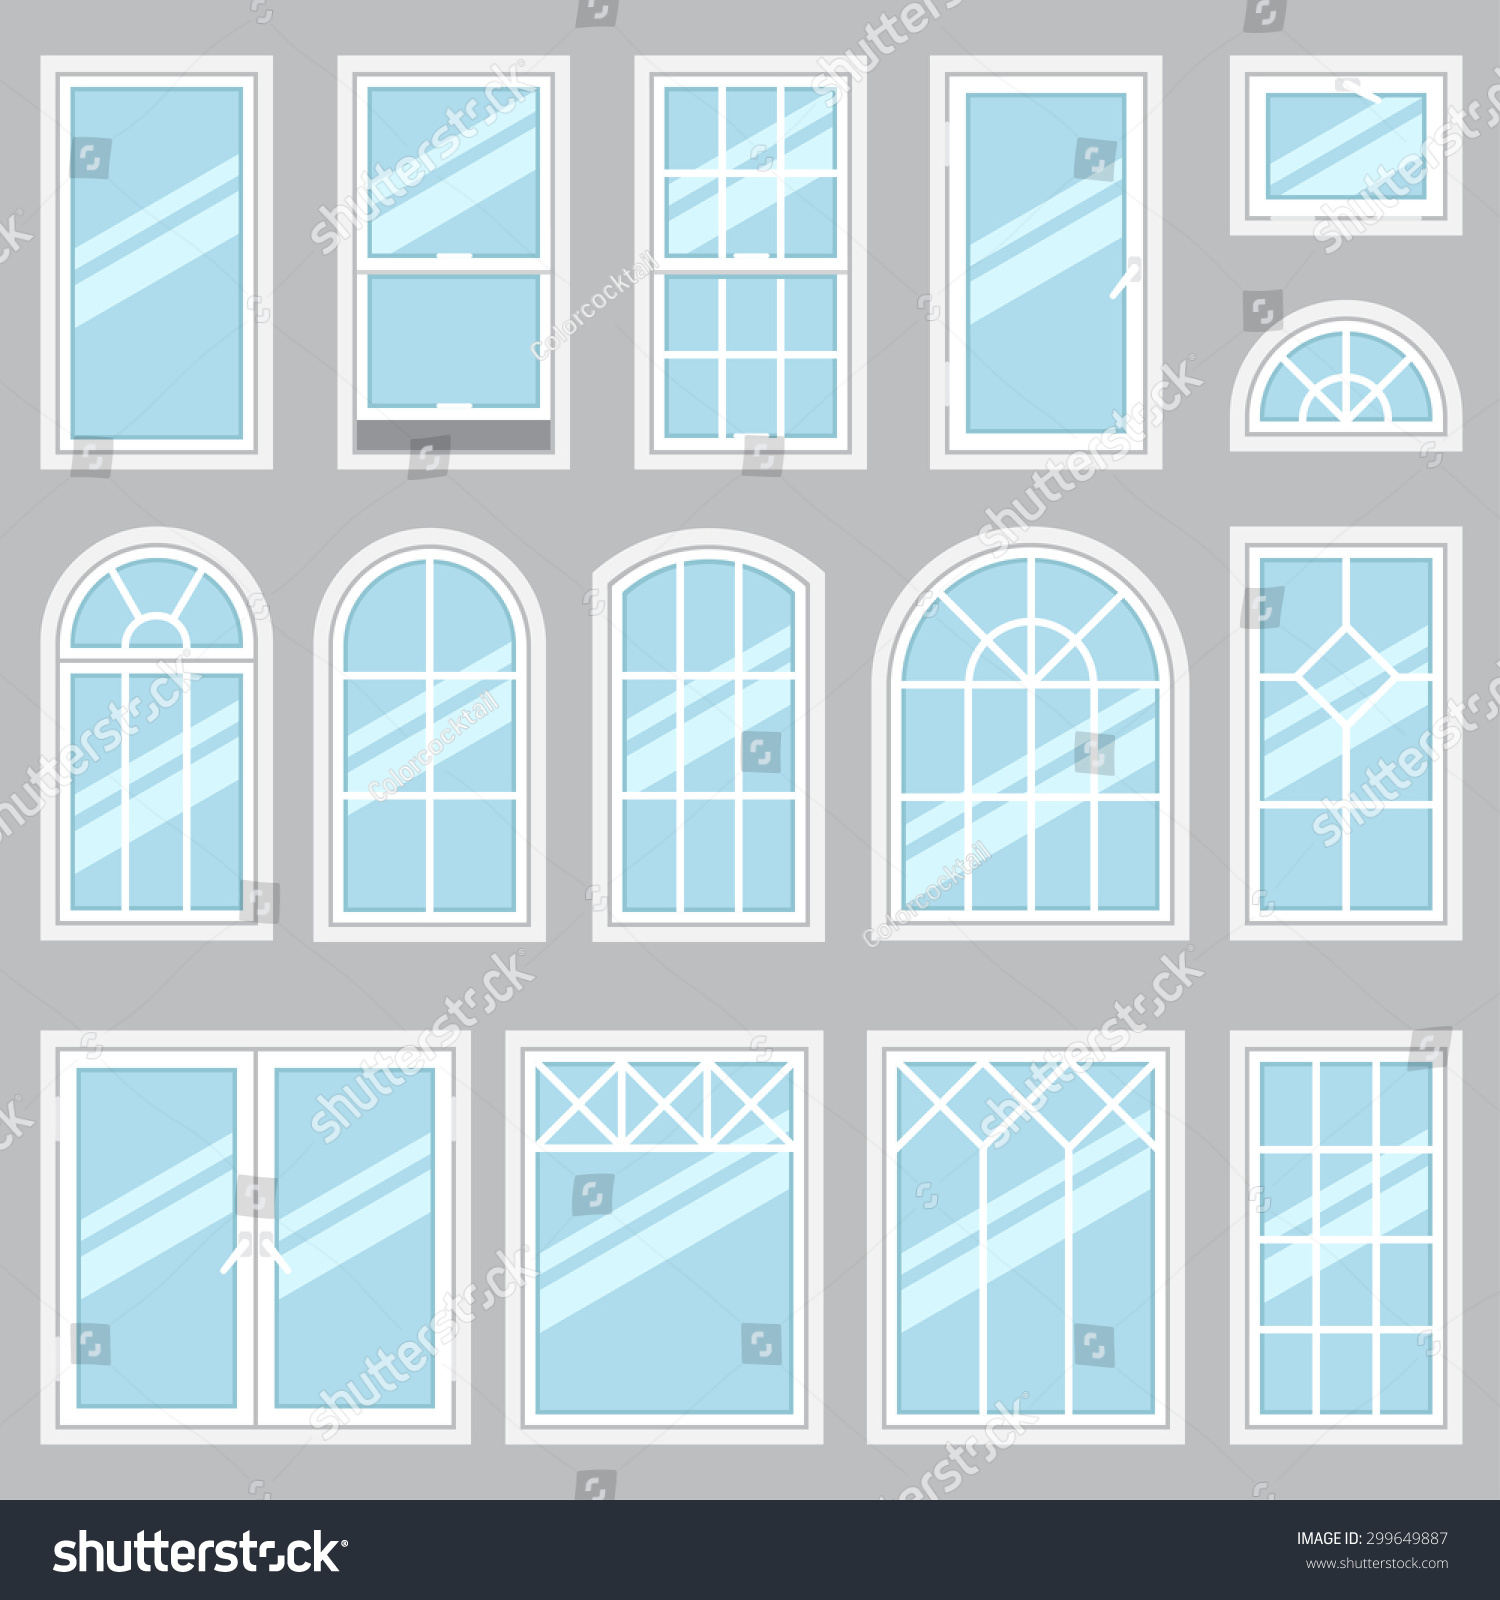 Vector collection of various windows types. For interior and exterior use. Flat style.